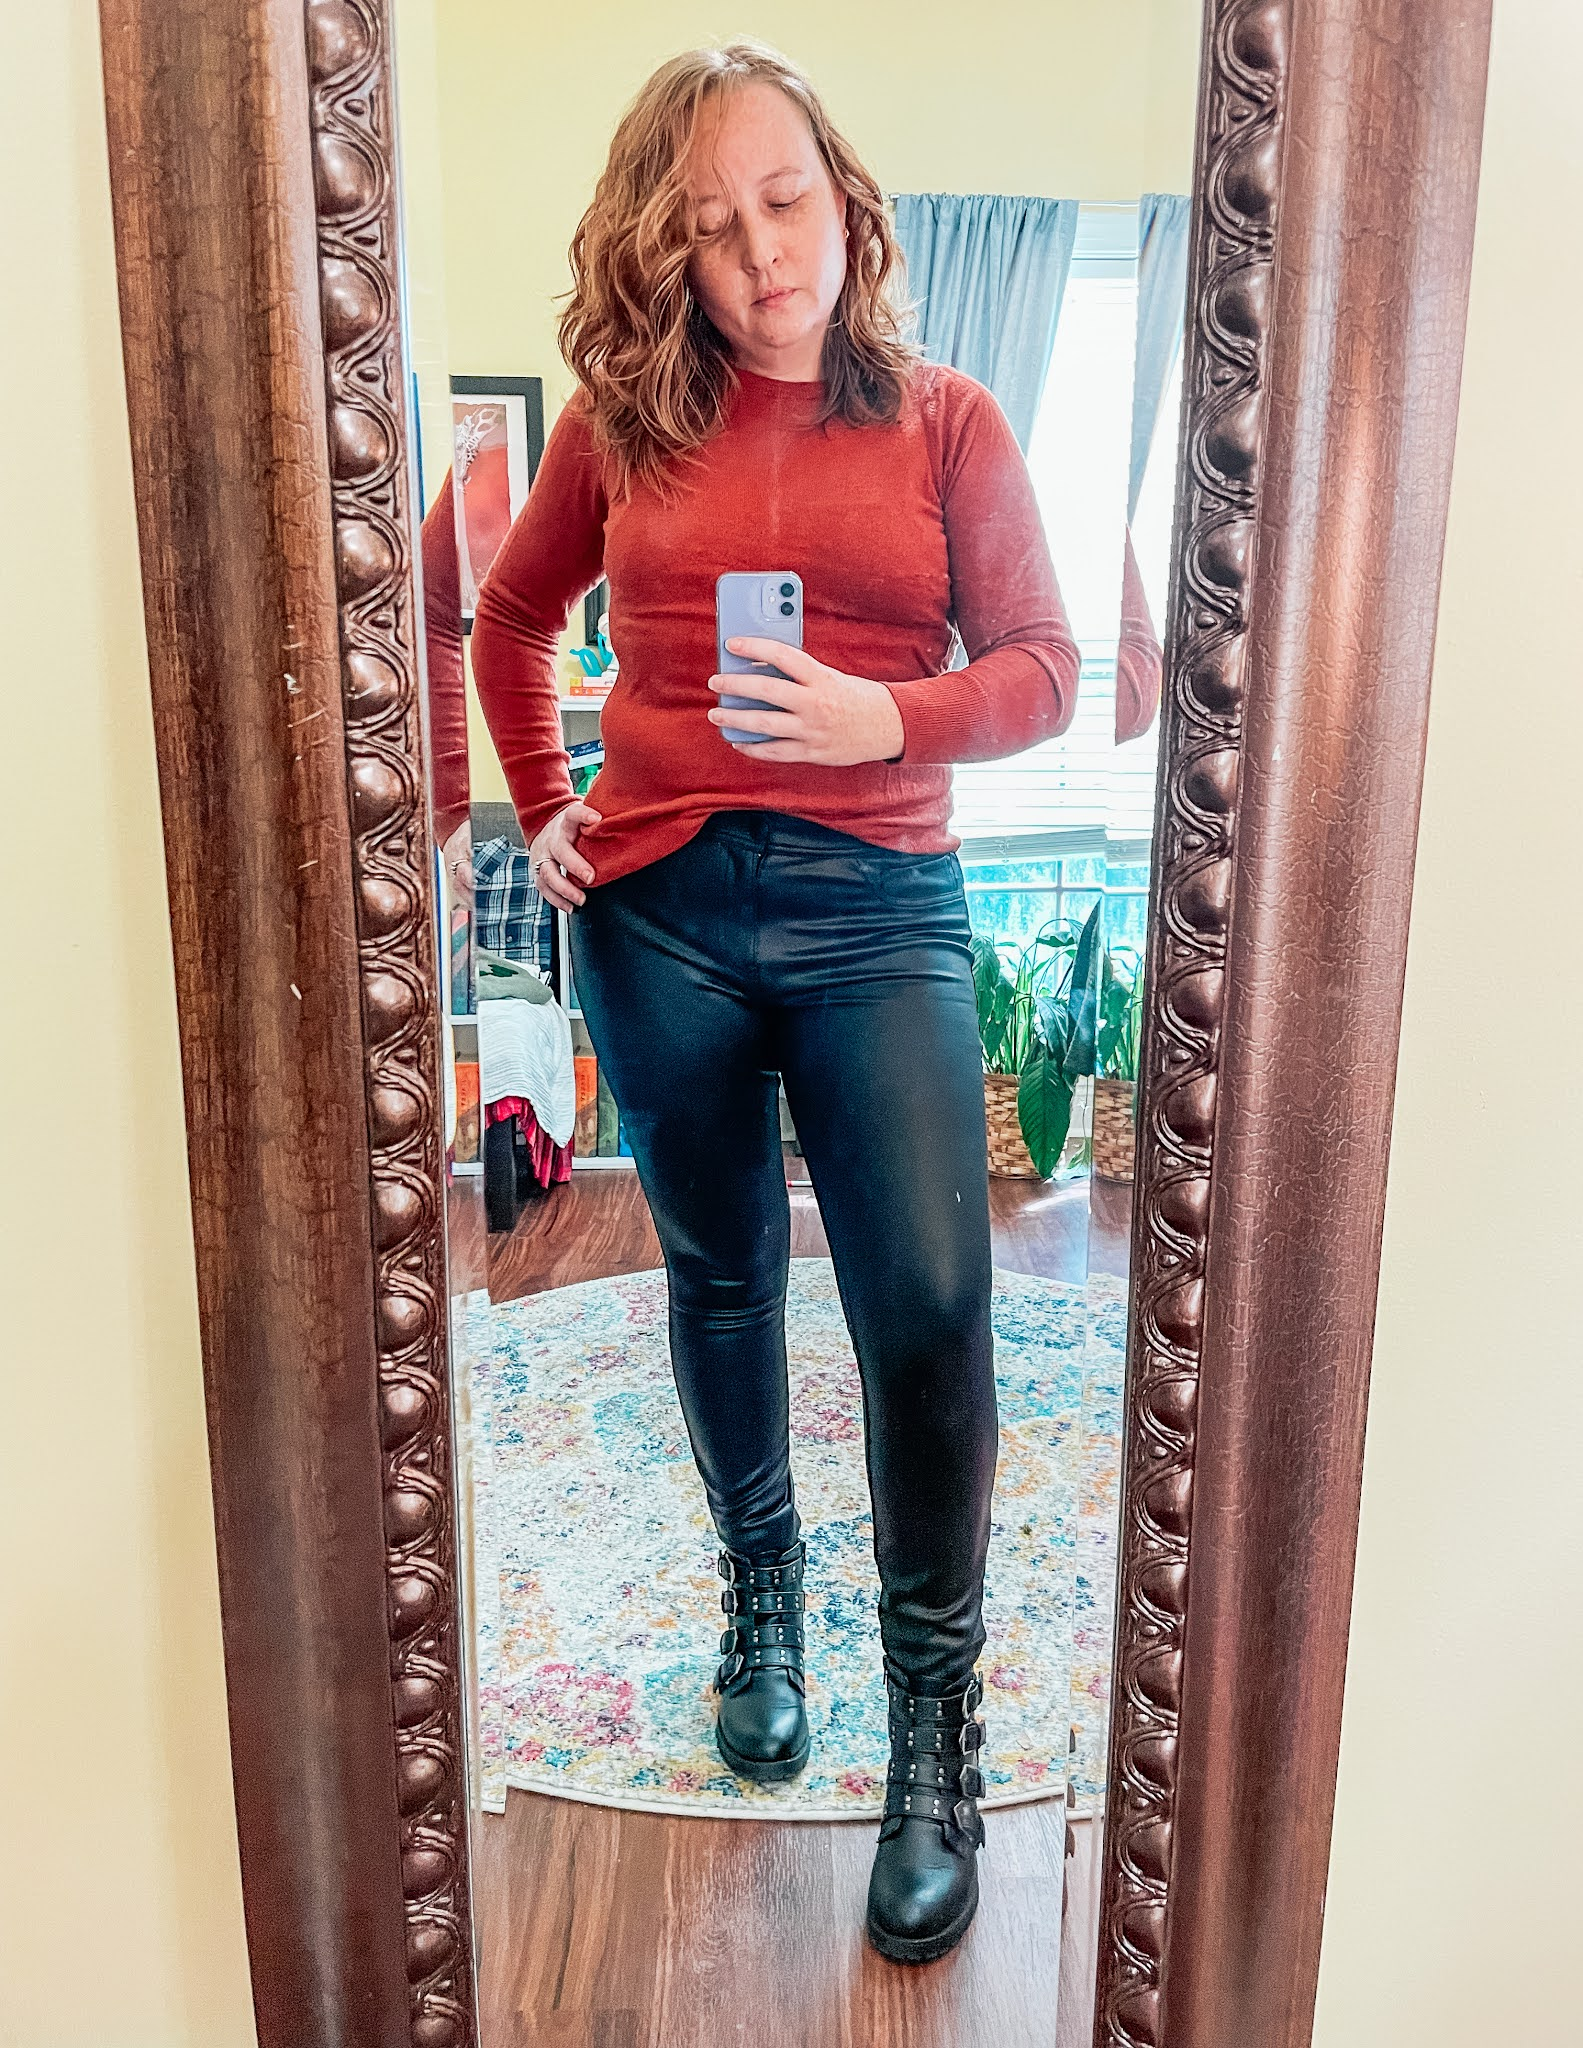 leather-pants-orange-sweater-motorcycle-boots